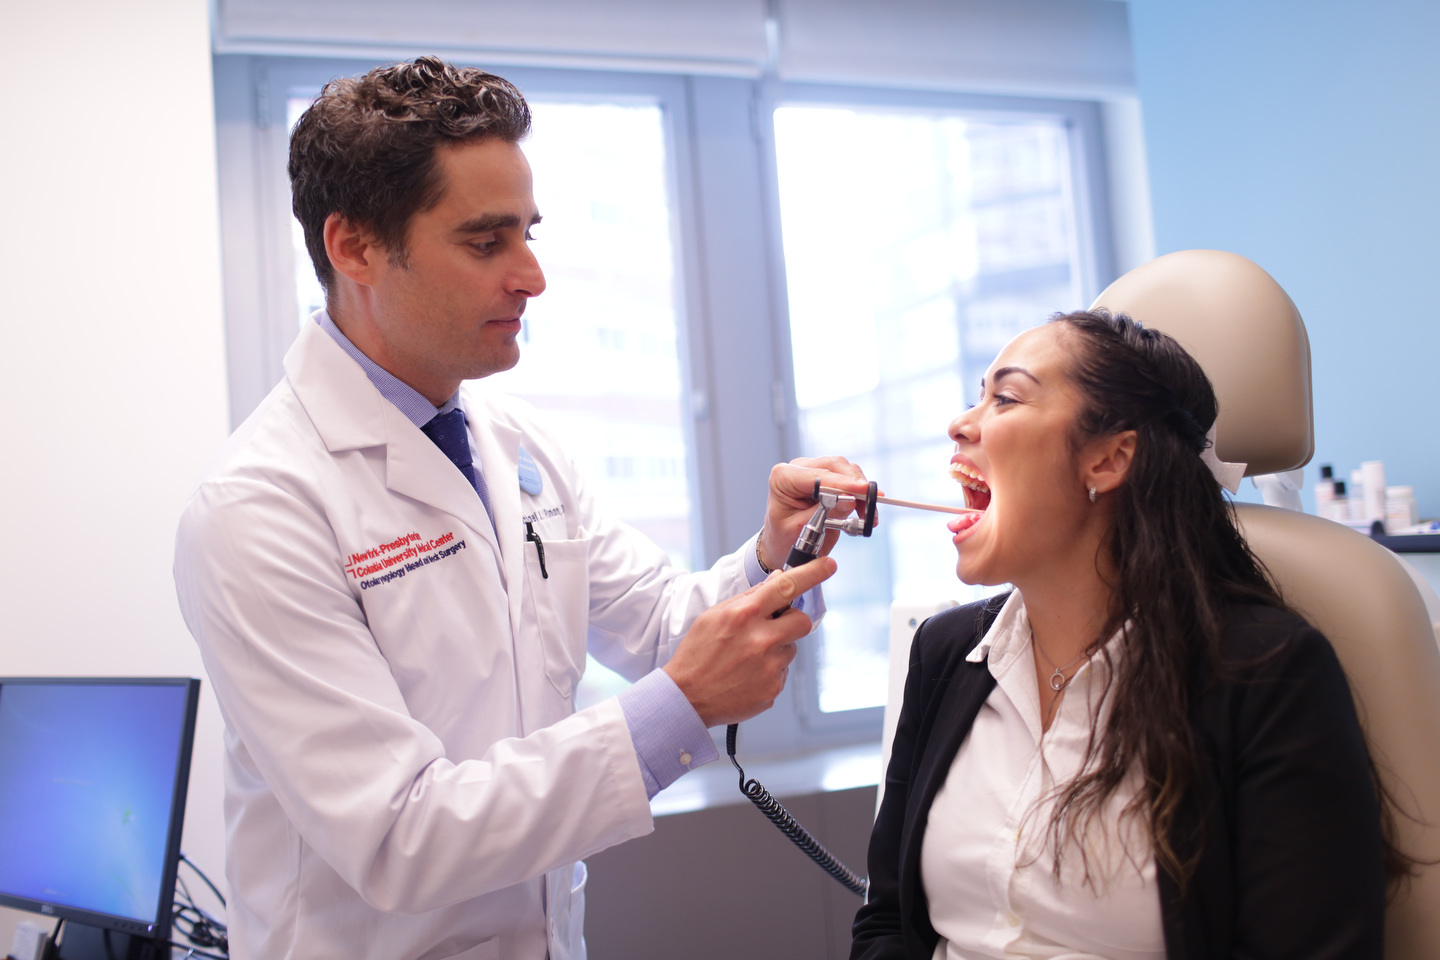 Swallowing Disorders | Columbia University Medical Center